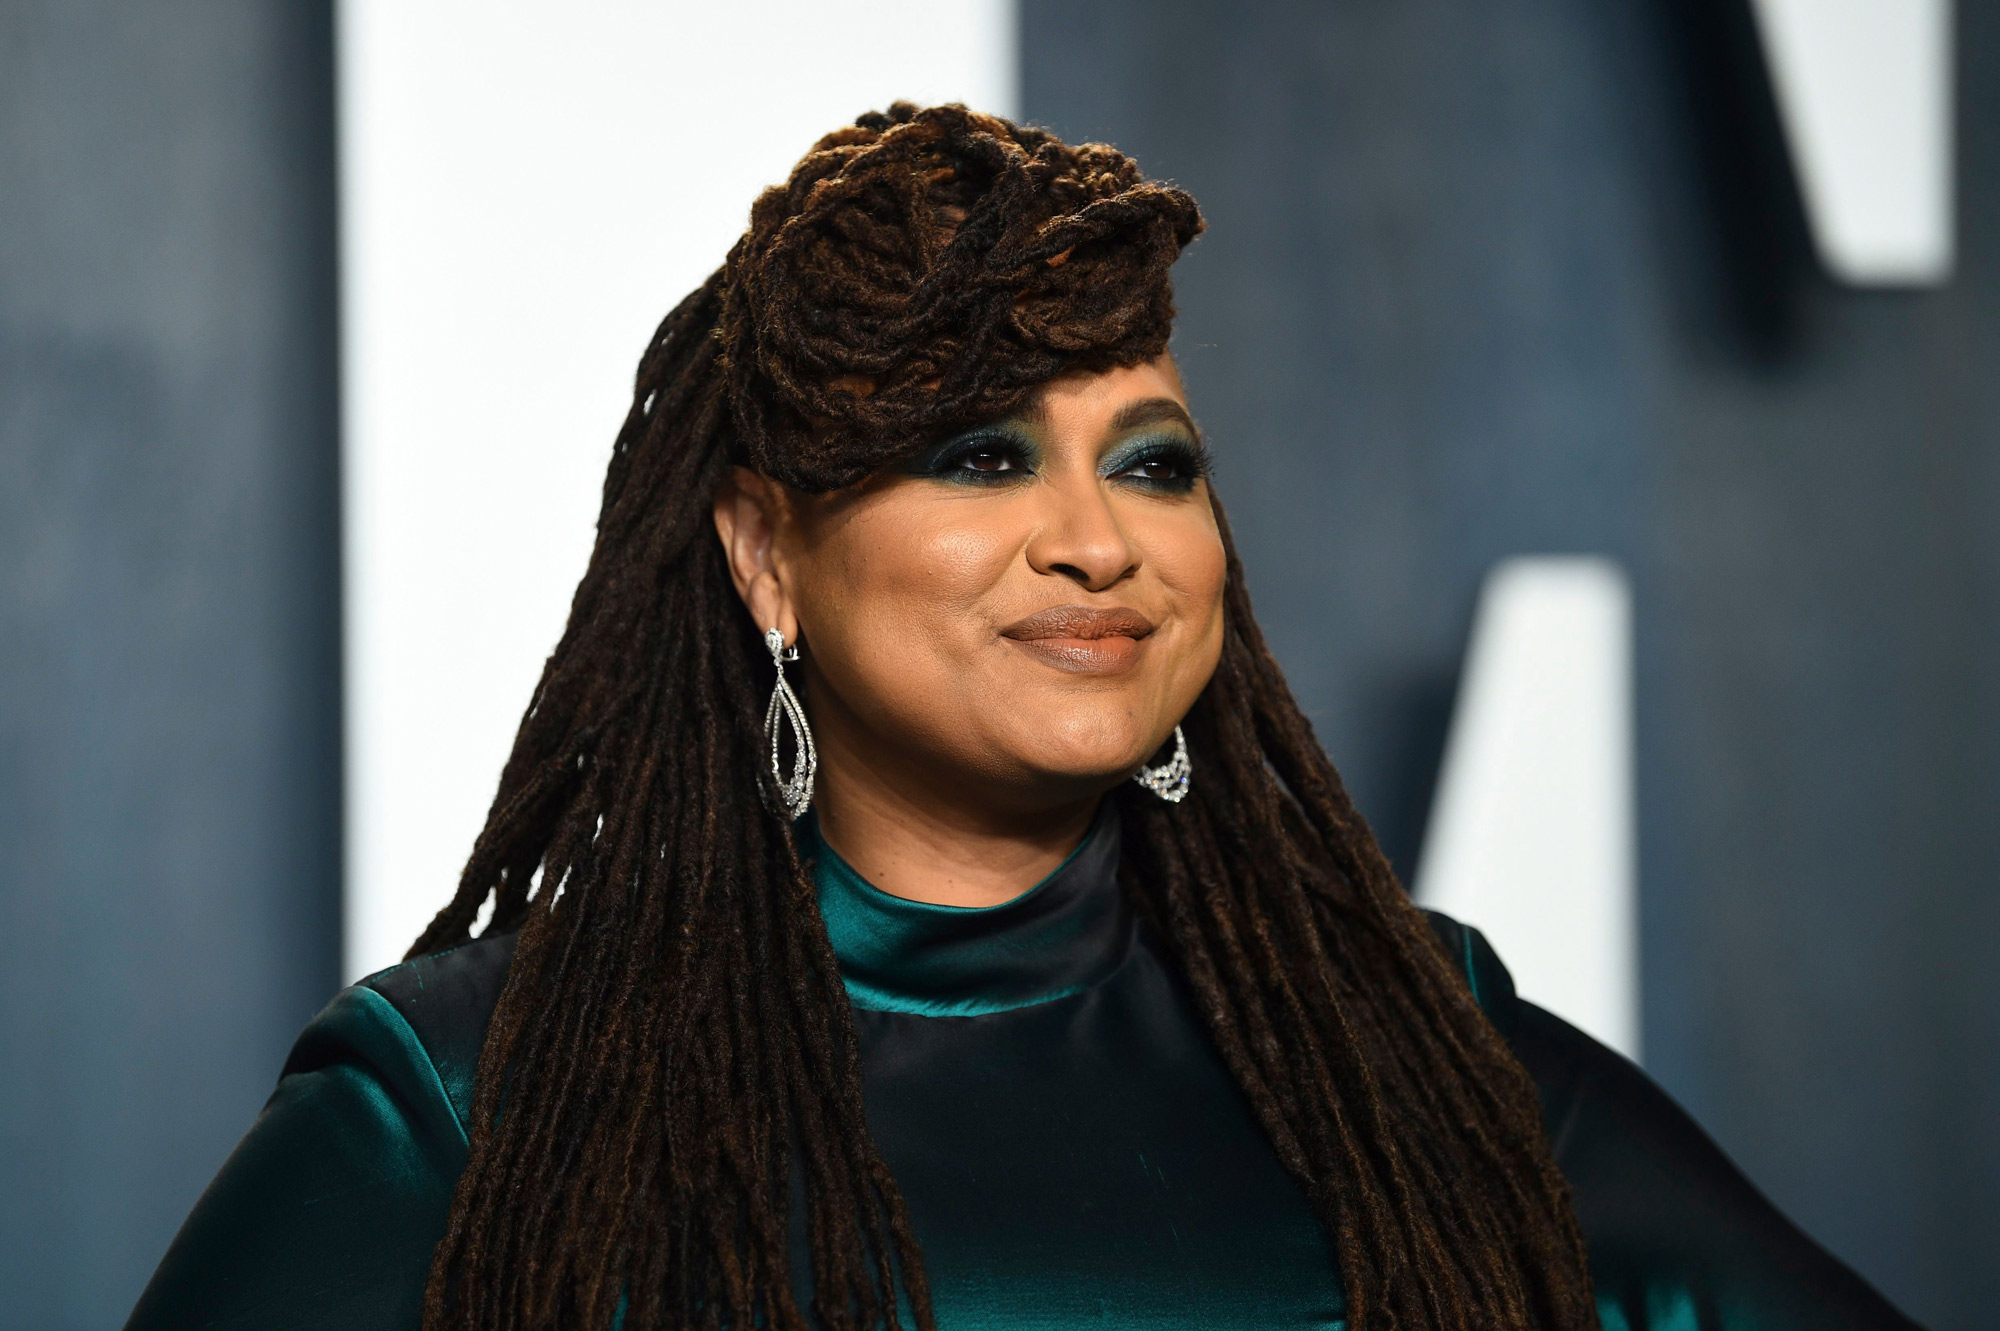 Ava DuVernay arrives at the Vanity Fair Oscar Party, in Beverly Hills, Calif92nd Academy Awards - Vanity Fair Oscar Party, Beverly Hills, USA - 09 Feb 2020